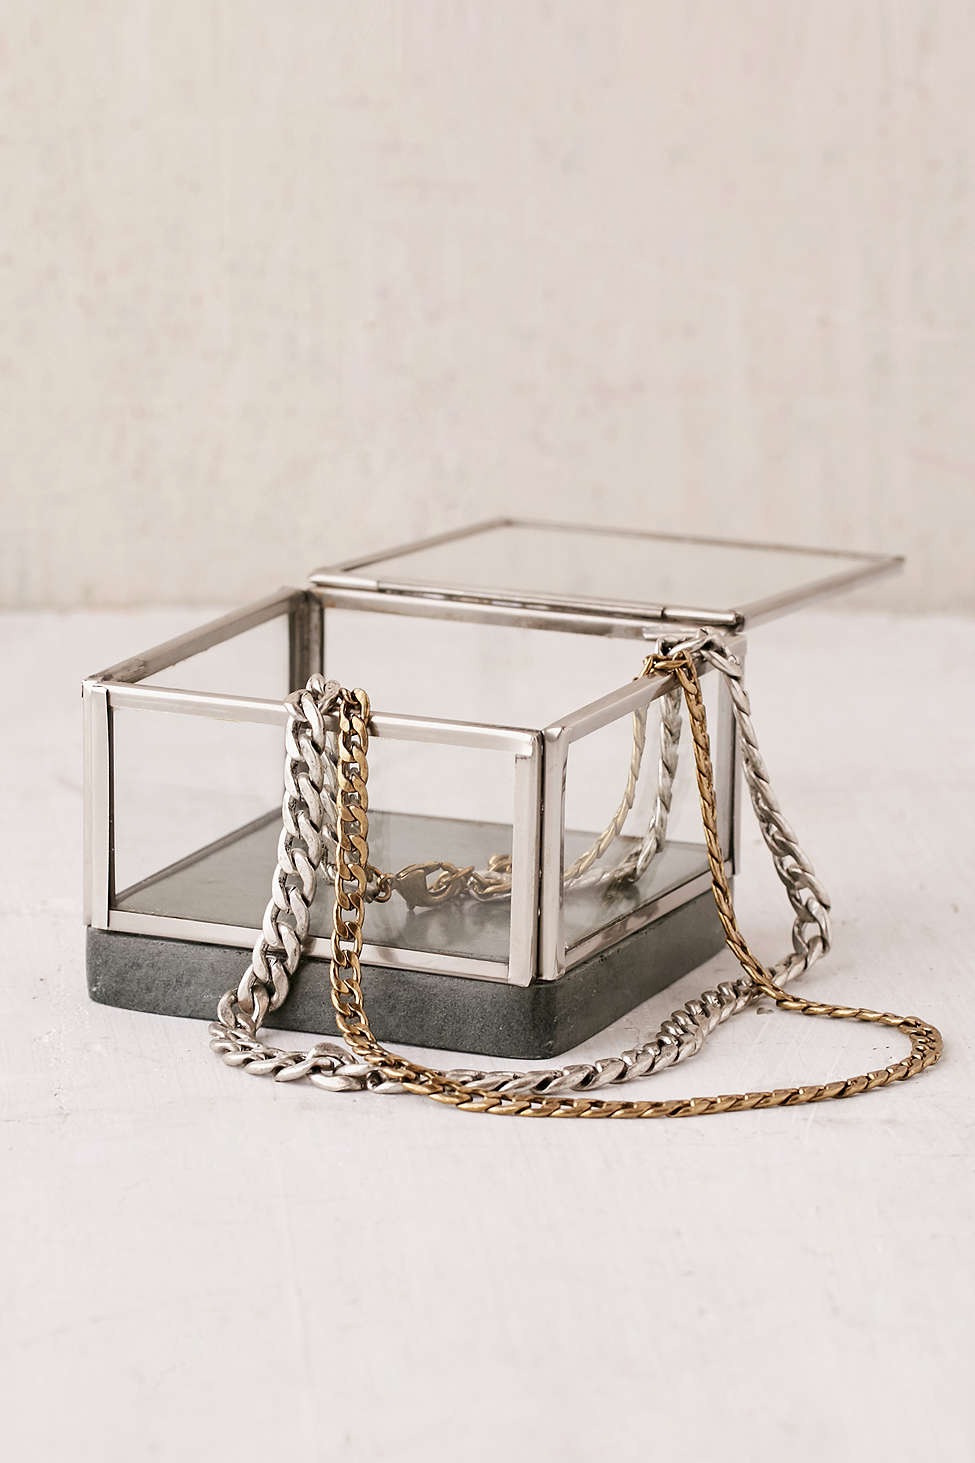 Glass display box from Urban Outfitters